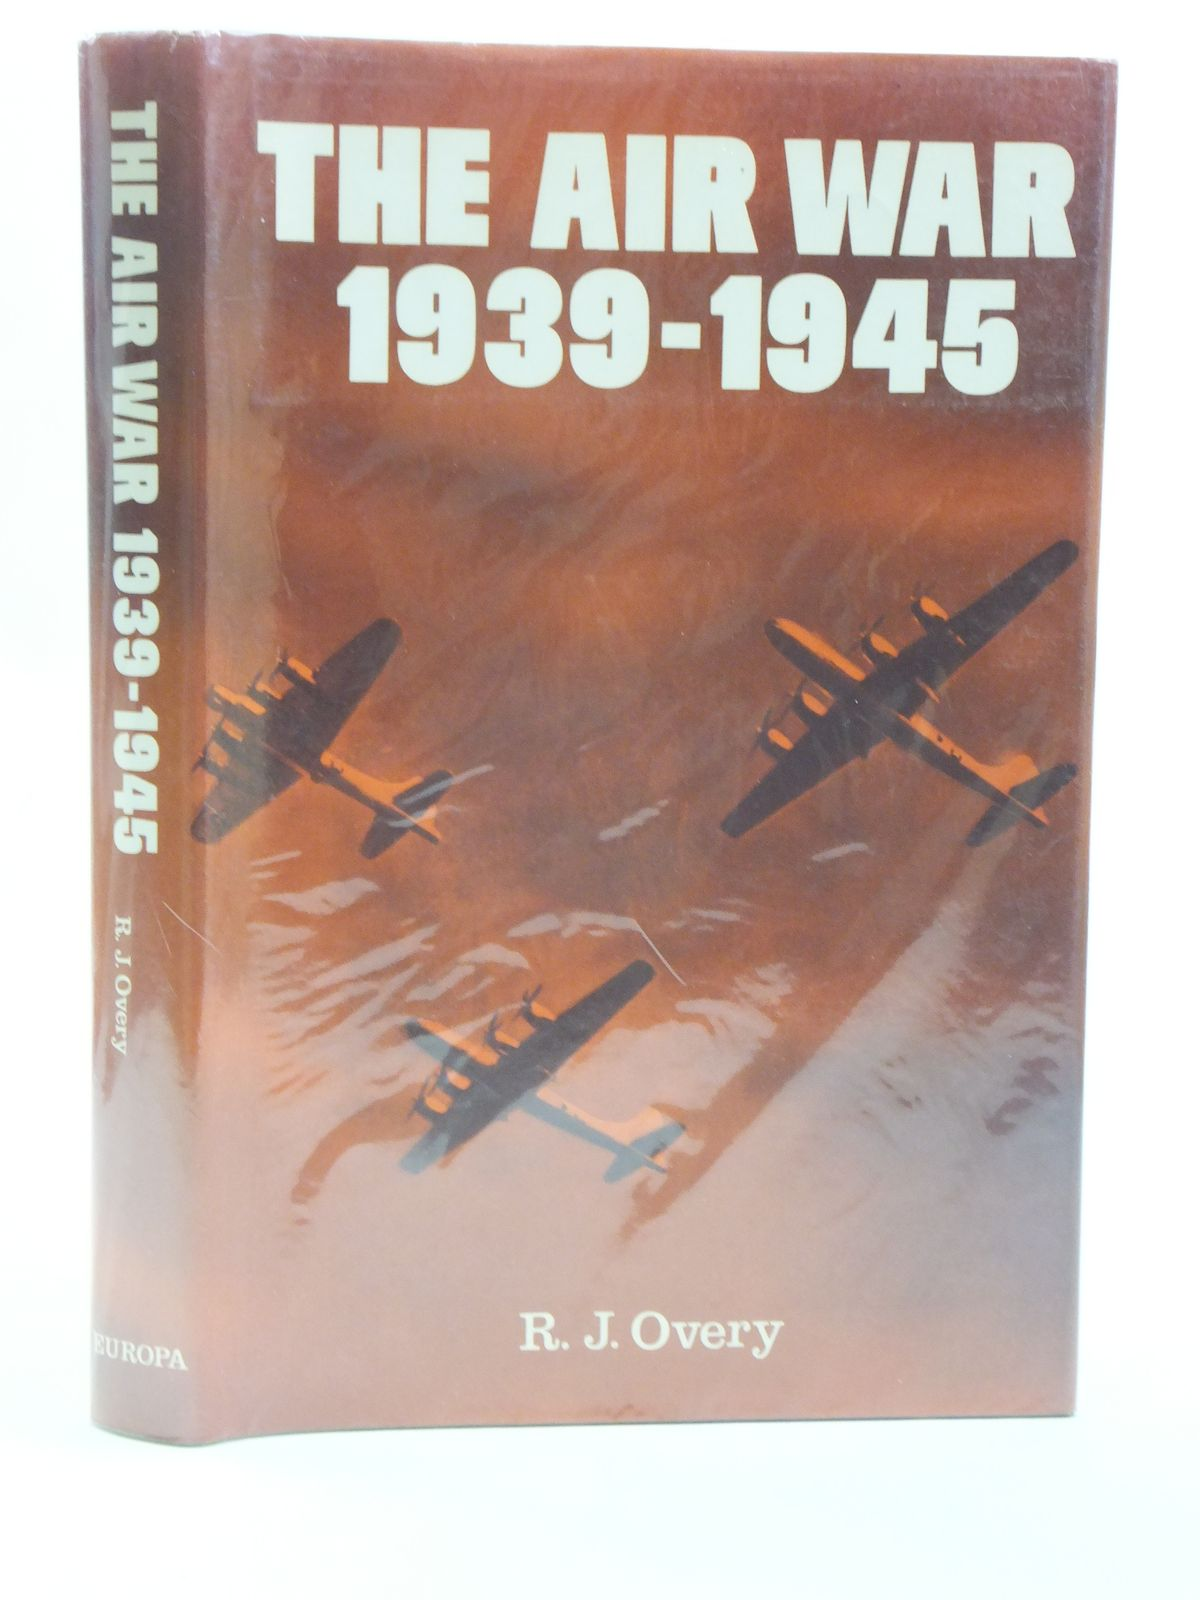 Photo of THE AIR WAR 1939-1945 written by Overy, R.J. published by Europa (STOCK CODE: 1604956)  for sale by Stella & Rose's Books